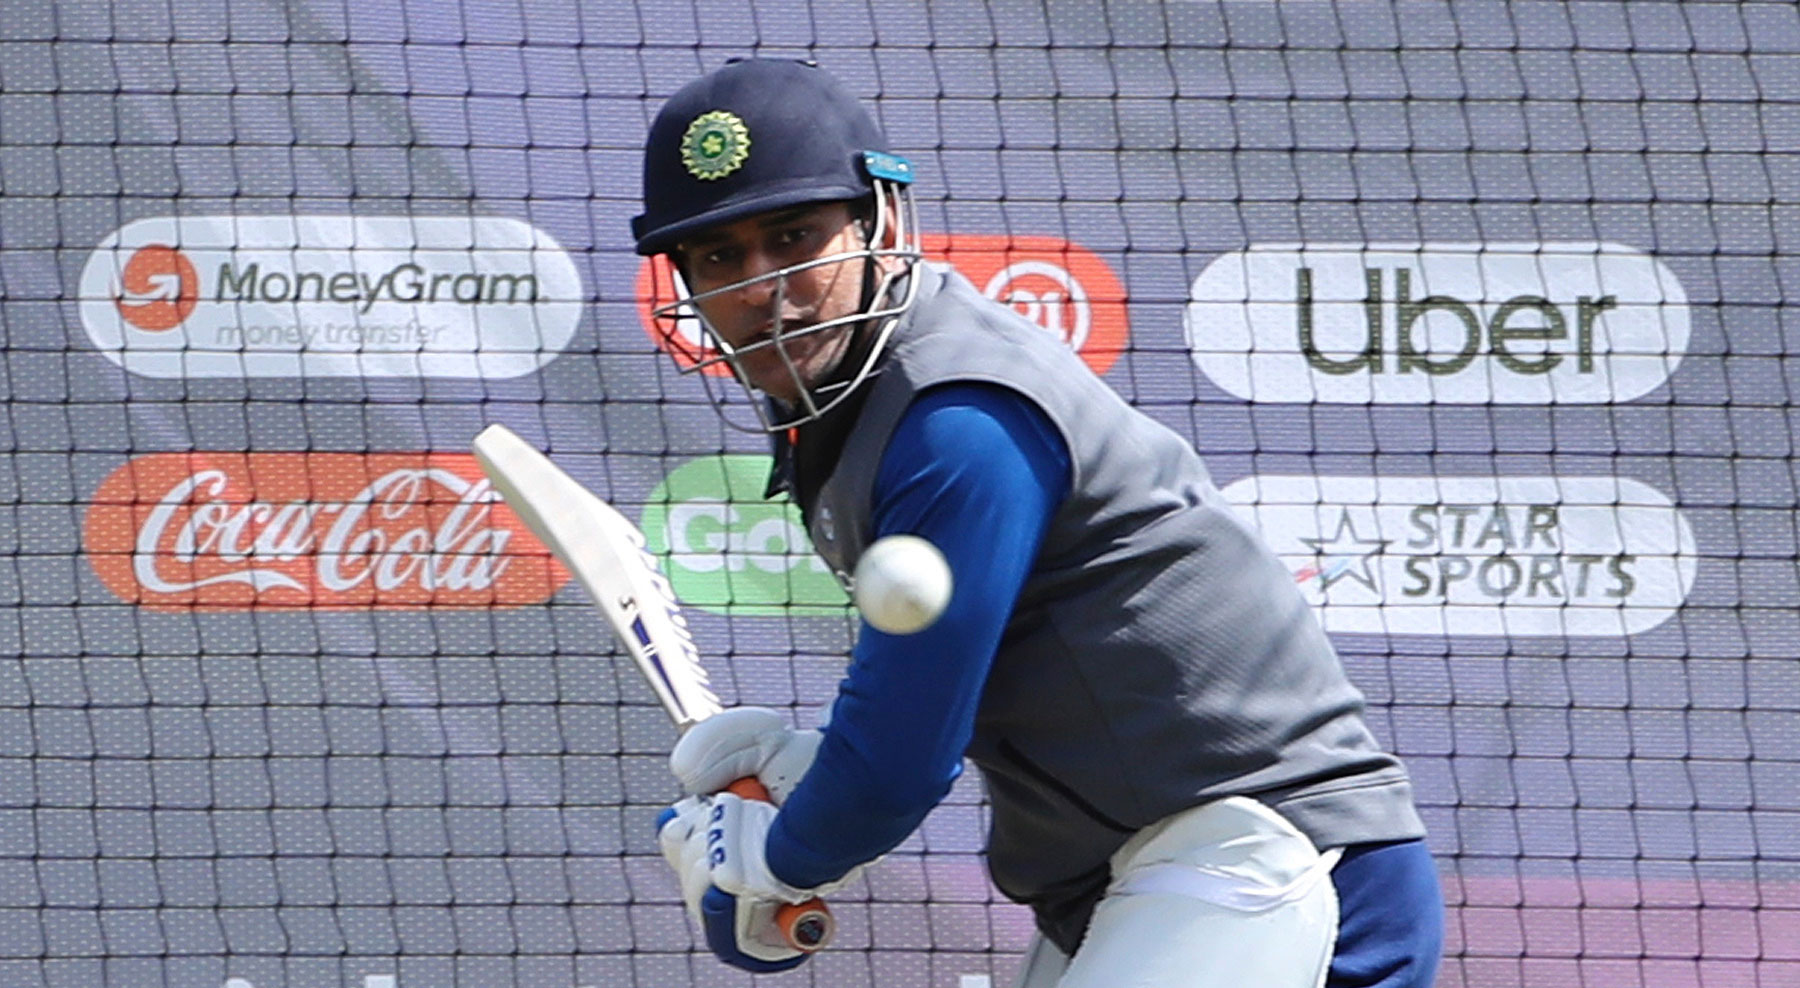 Mahendra Singh Dhoni at The Oval on June 8, 2019.